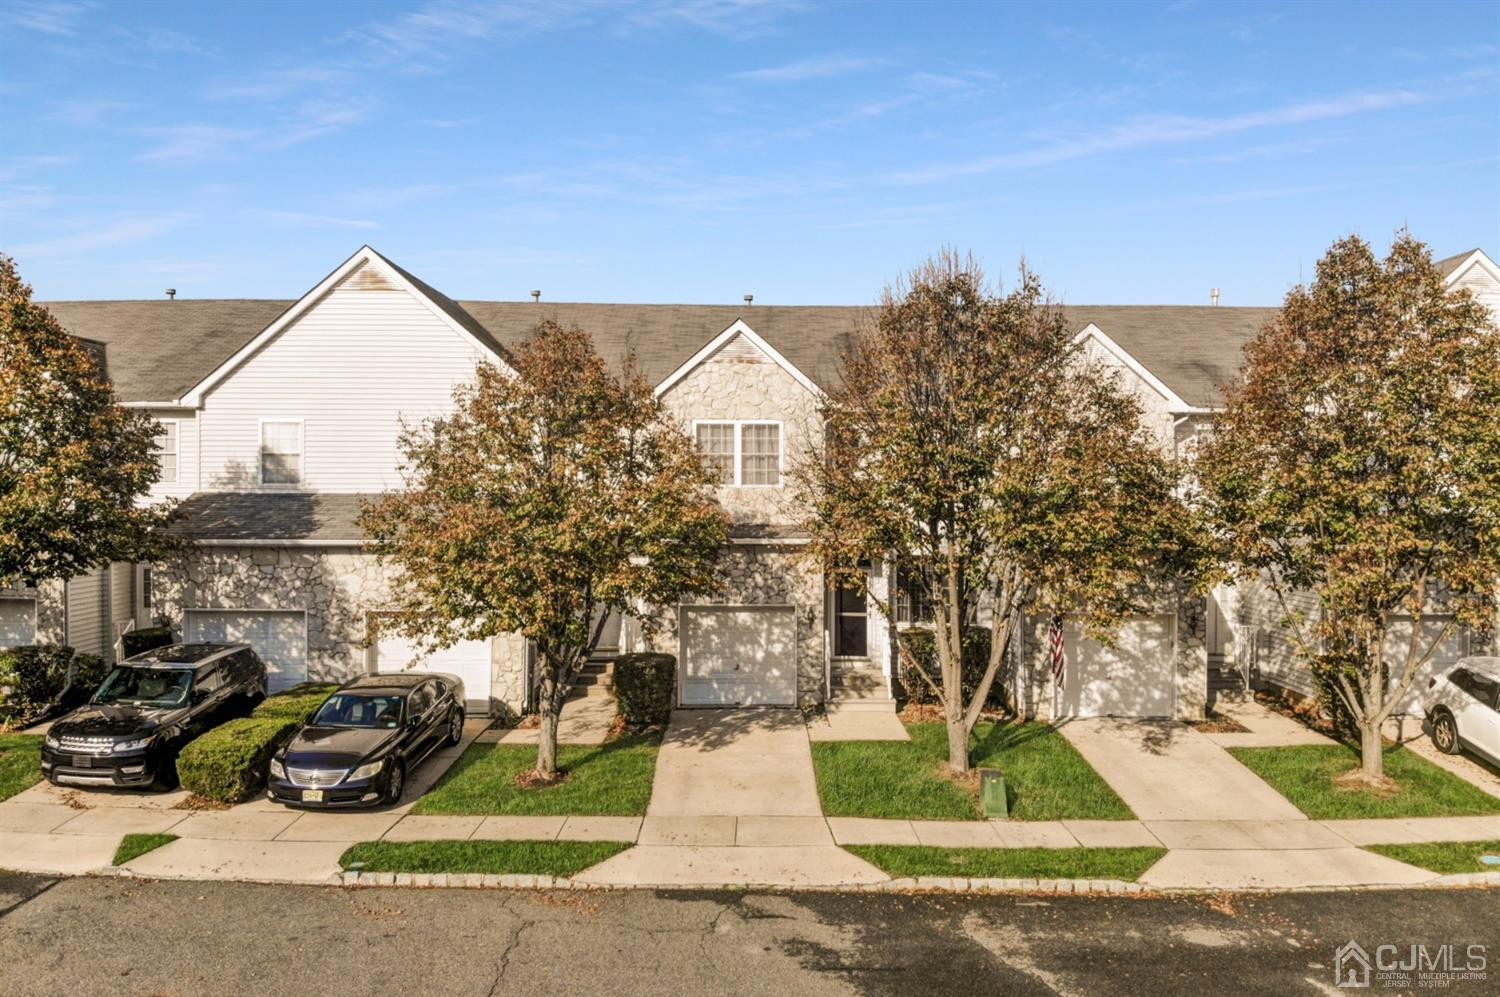 townhouses للـ Sale في Jamesburg, New Jersey 08831 United States